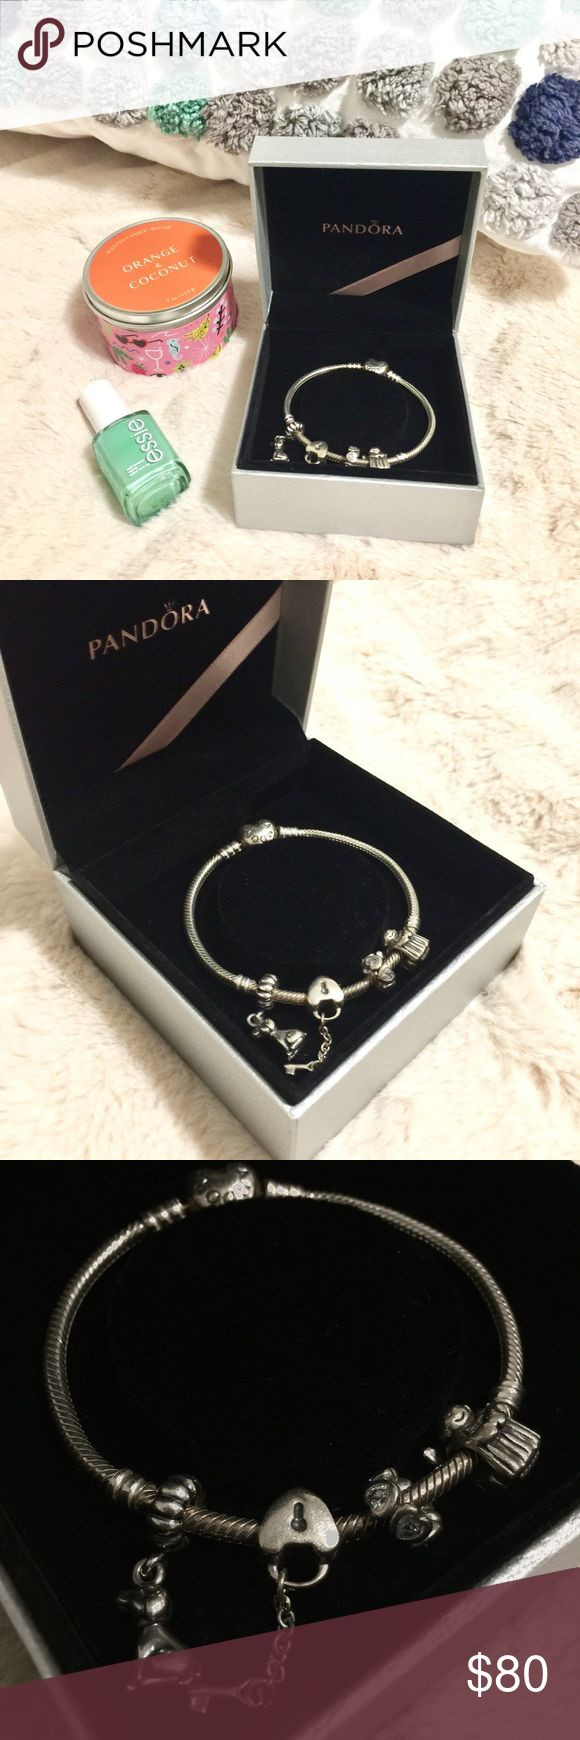 """Pandora Charm Bracelet This is my *authentic Pandora charm bracelet with the heart clasp. It comes with four charms: the dog, heart locket and key, jeweled heart band, and the guardian angel! I believe it is the 6.7"""" bracelet, but will double check on that. :) Pandora Jewelry Bracelets"""